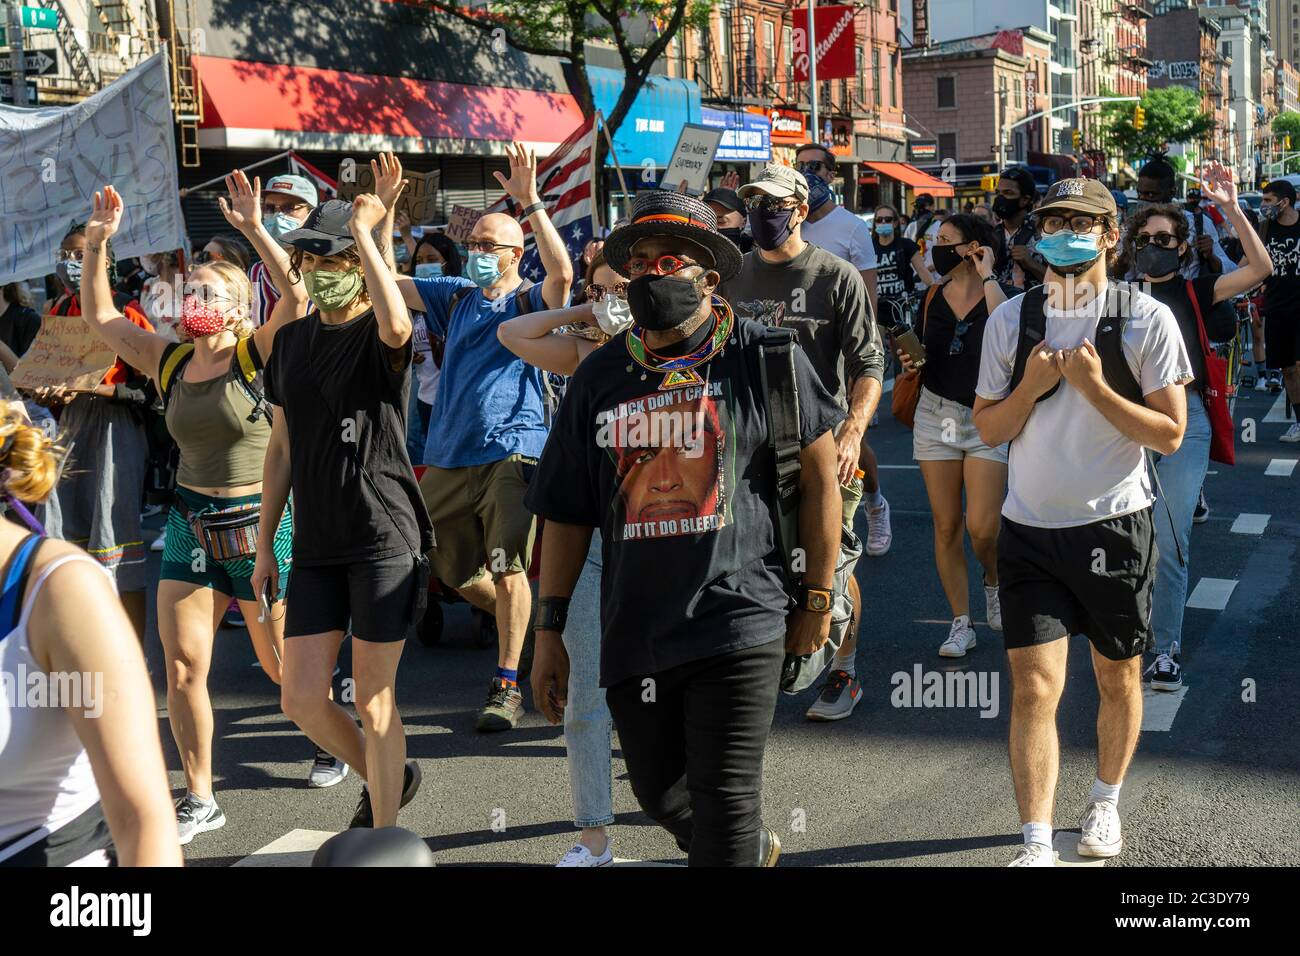 Black Lives Matter demonstrators march in Chelsea in New York protesting the death of George Floyd and calling for defunding the police, seen on Tuesday, June 16, 2020. (© Richard B. Levine) Stock Photo